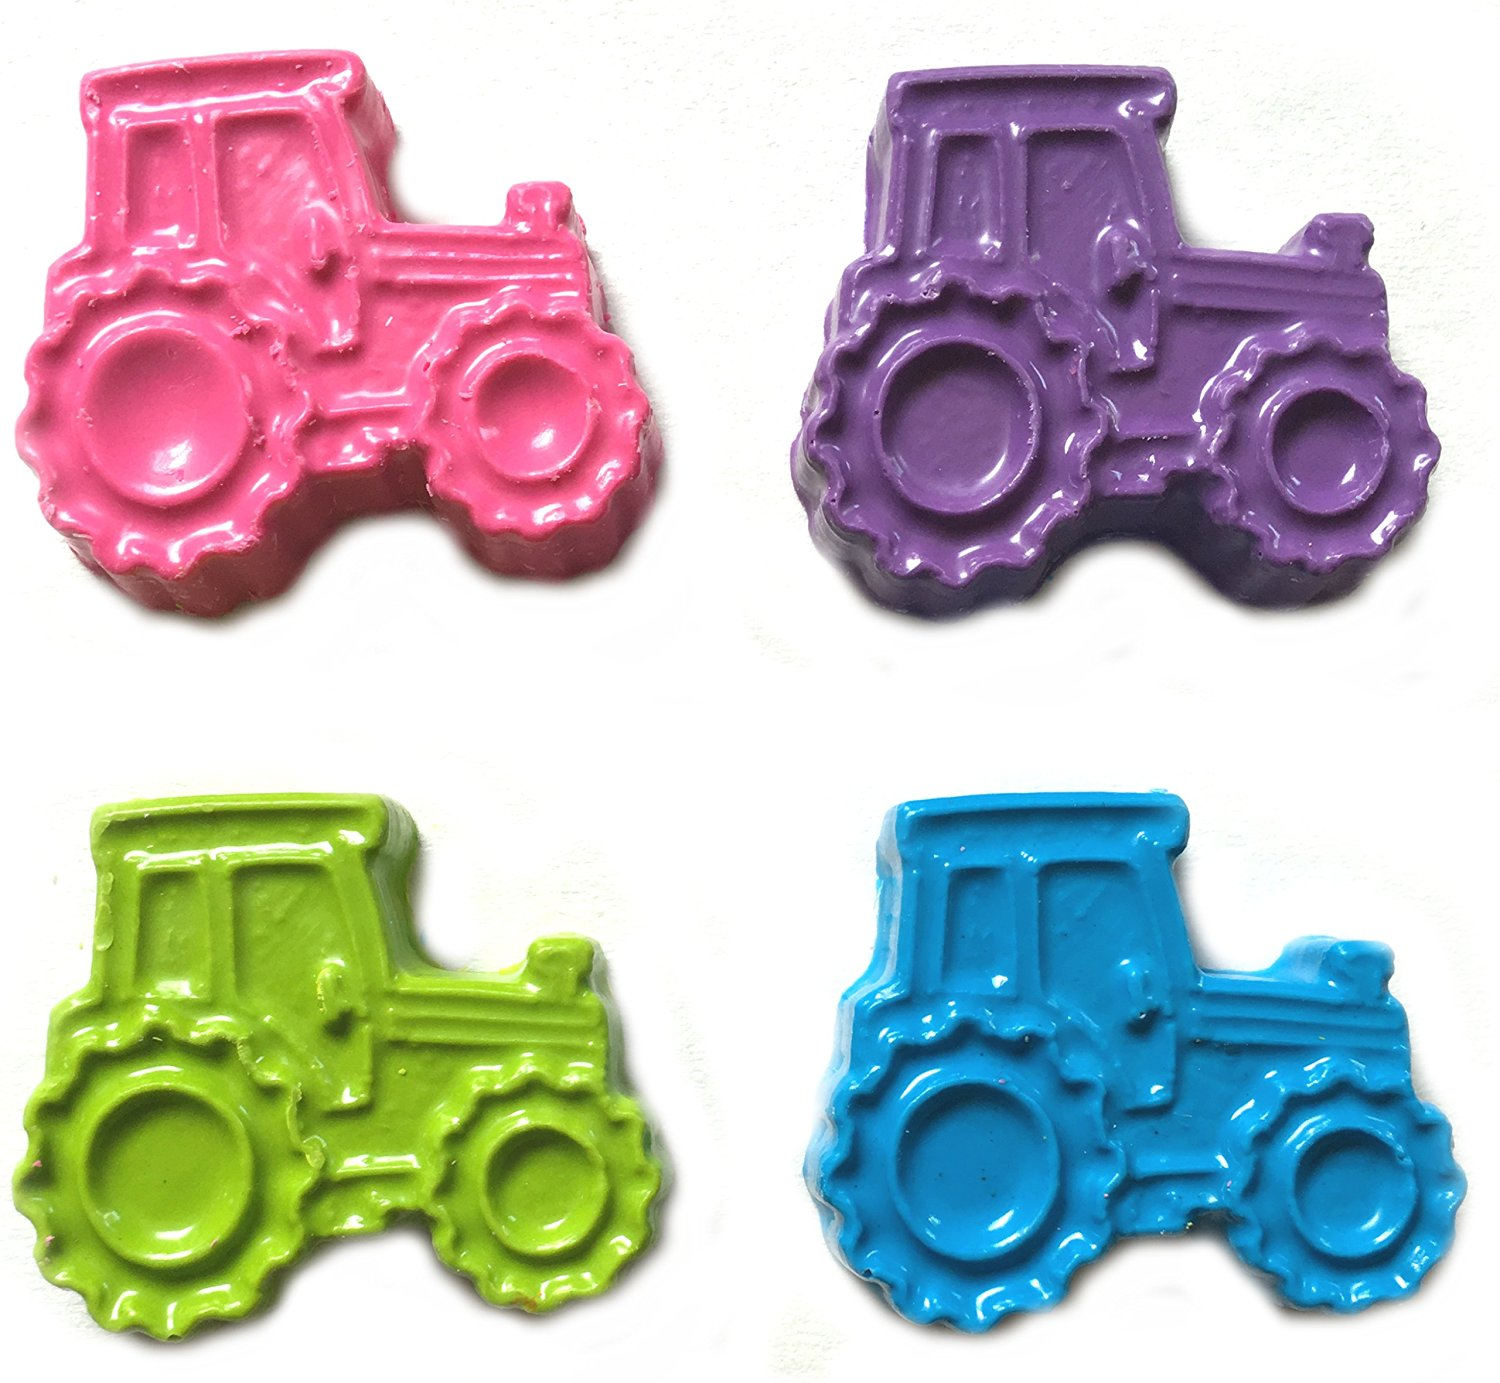 Cheap Tractor Party, find Tractor Party deals on line at Alibaba.com